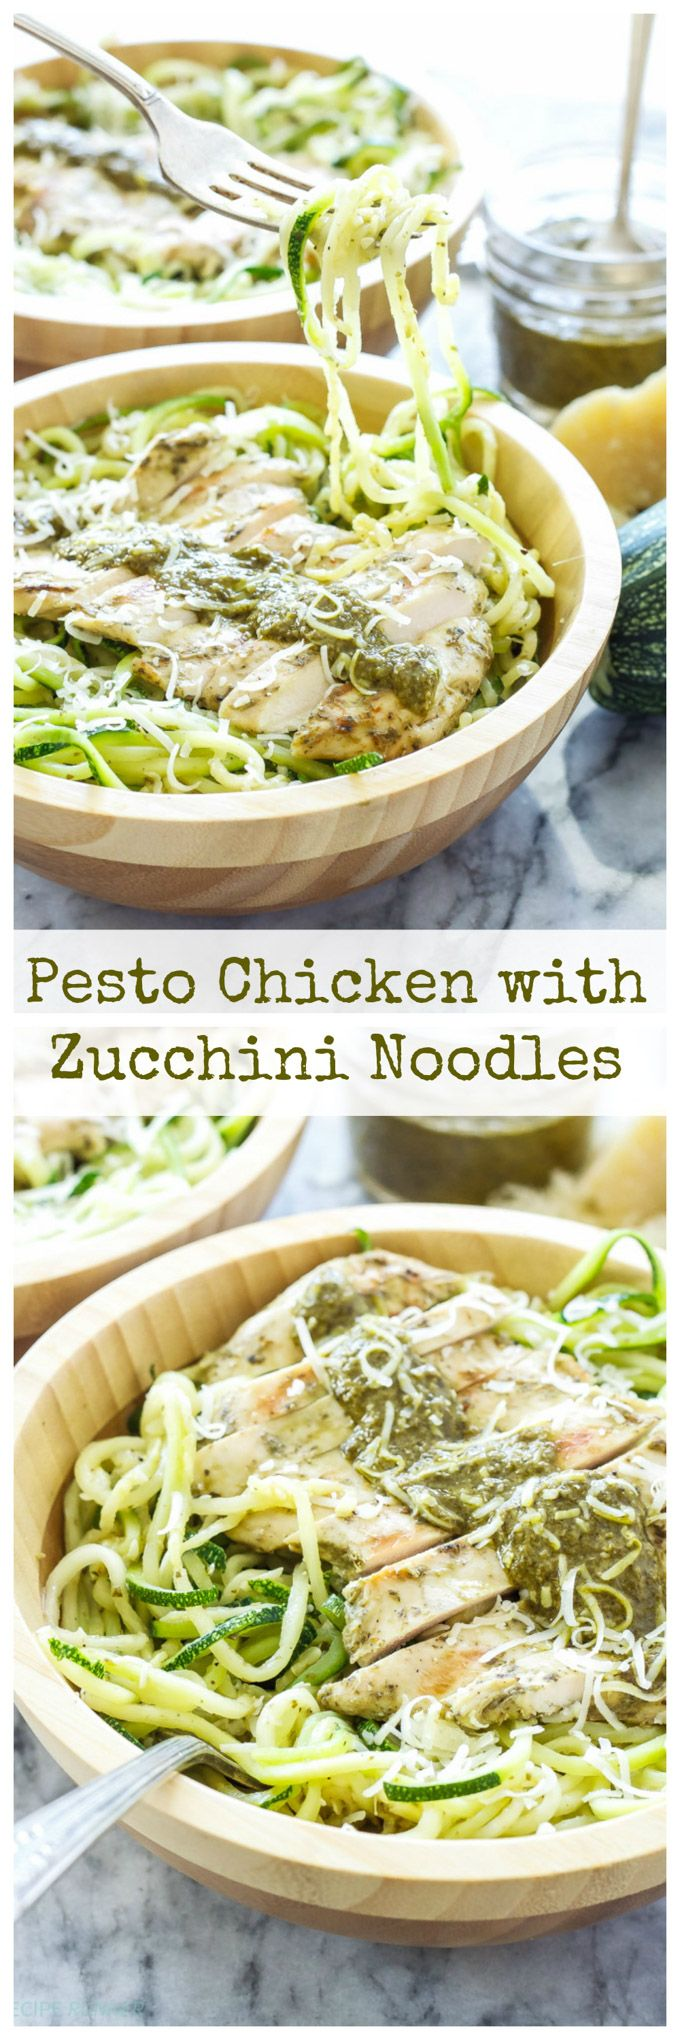 Pesto Chicken with Zucchini Noodles |